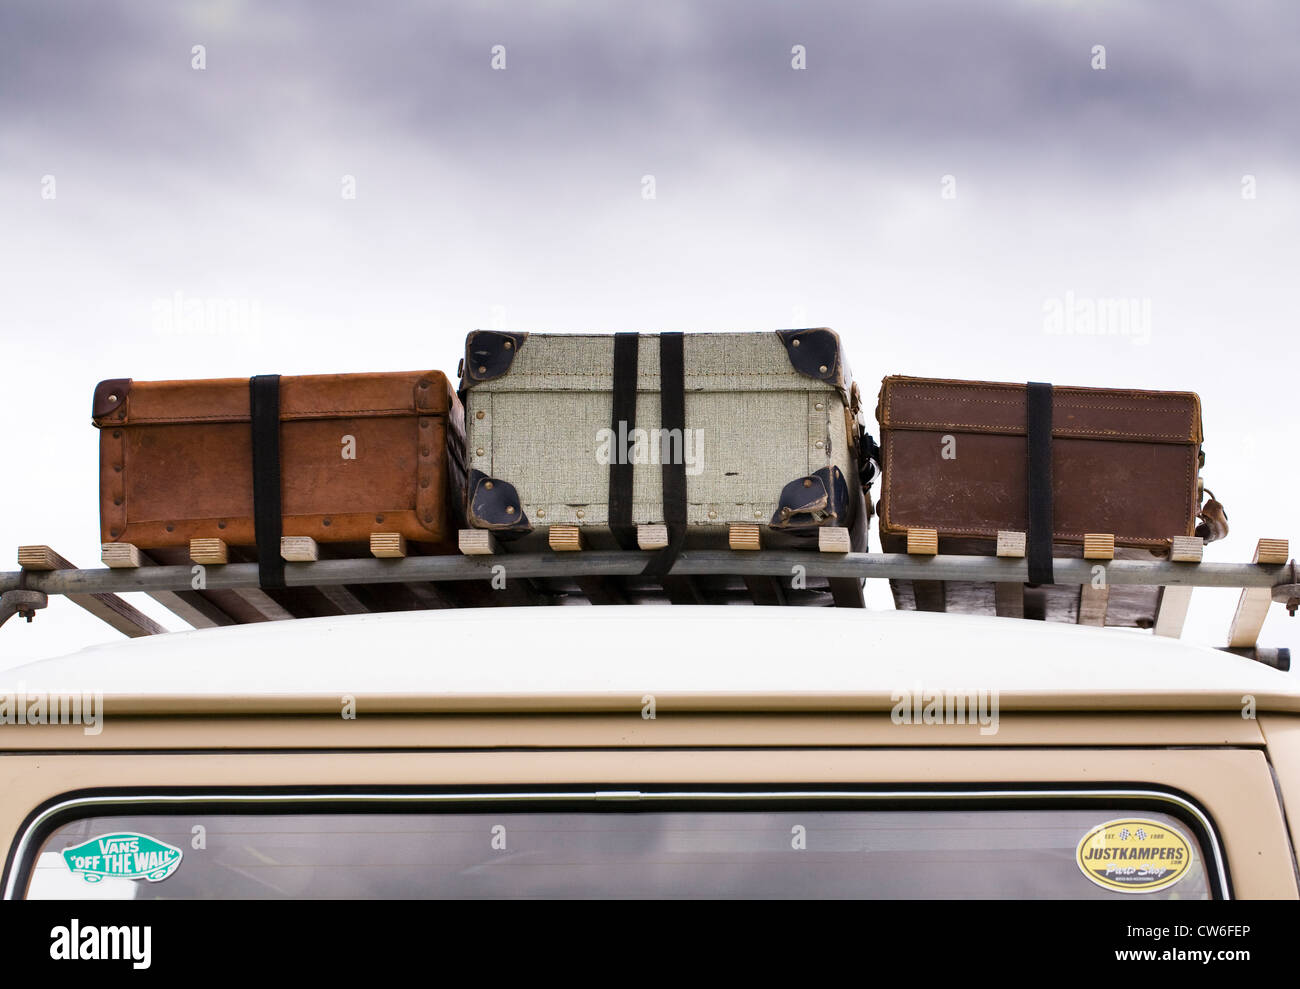 Three old suitcases on an old VW campervan. - Stock Image